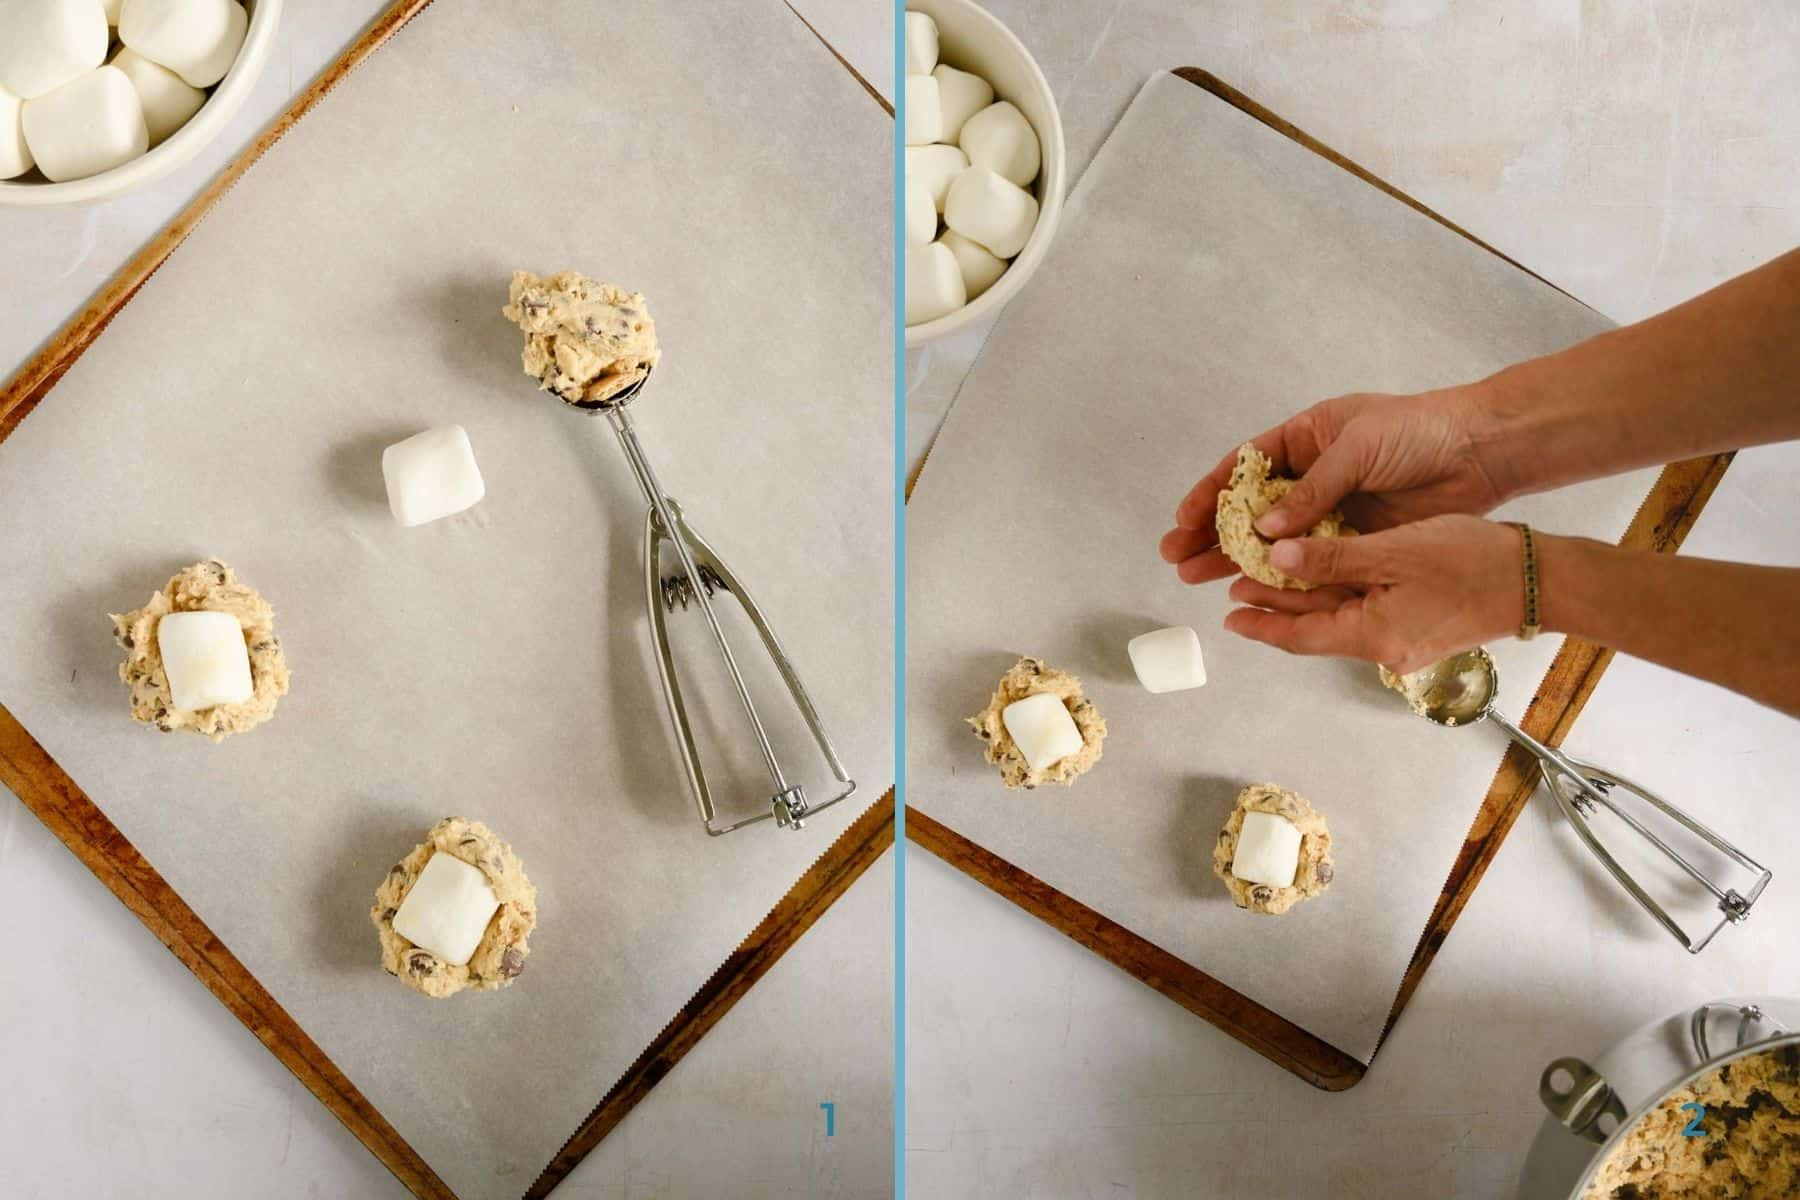 process shots of forming chocolate and marshmallow cookies with a cookie scoop on a baking sheet